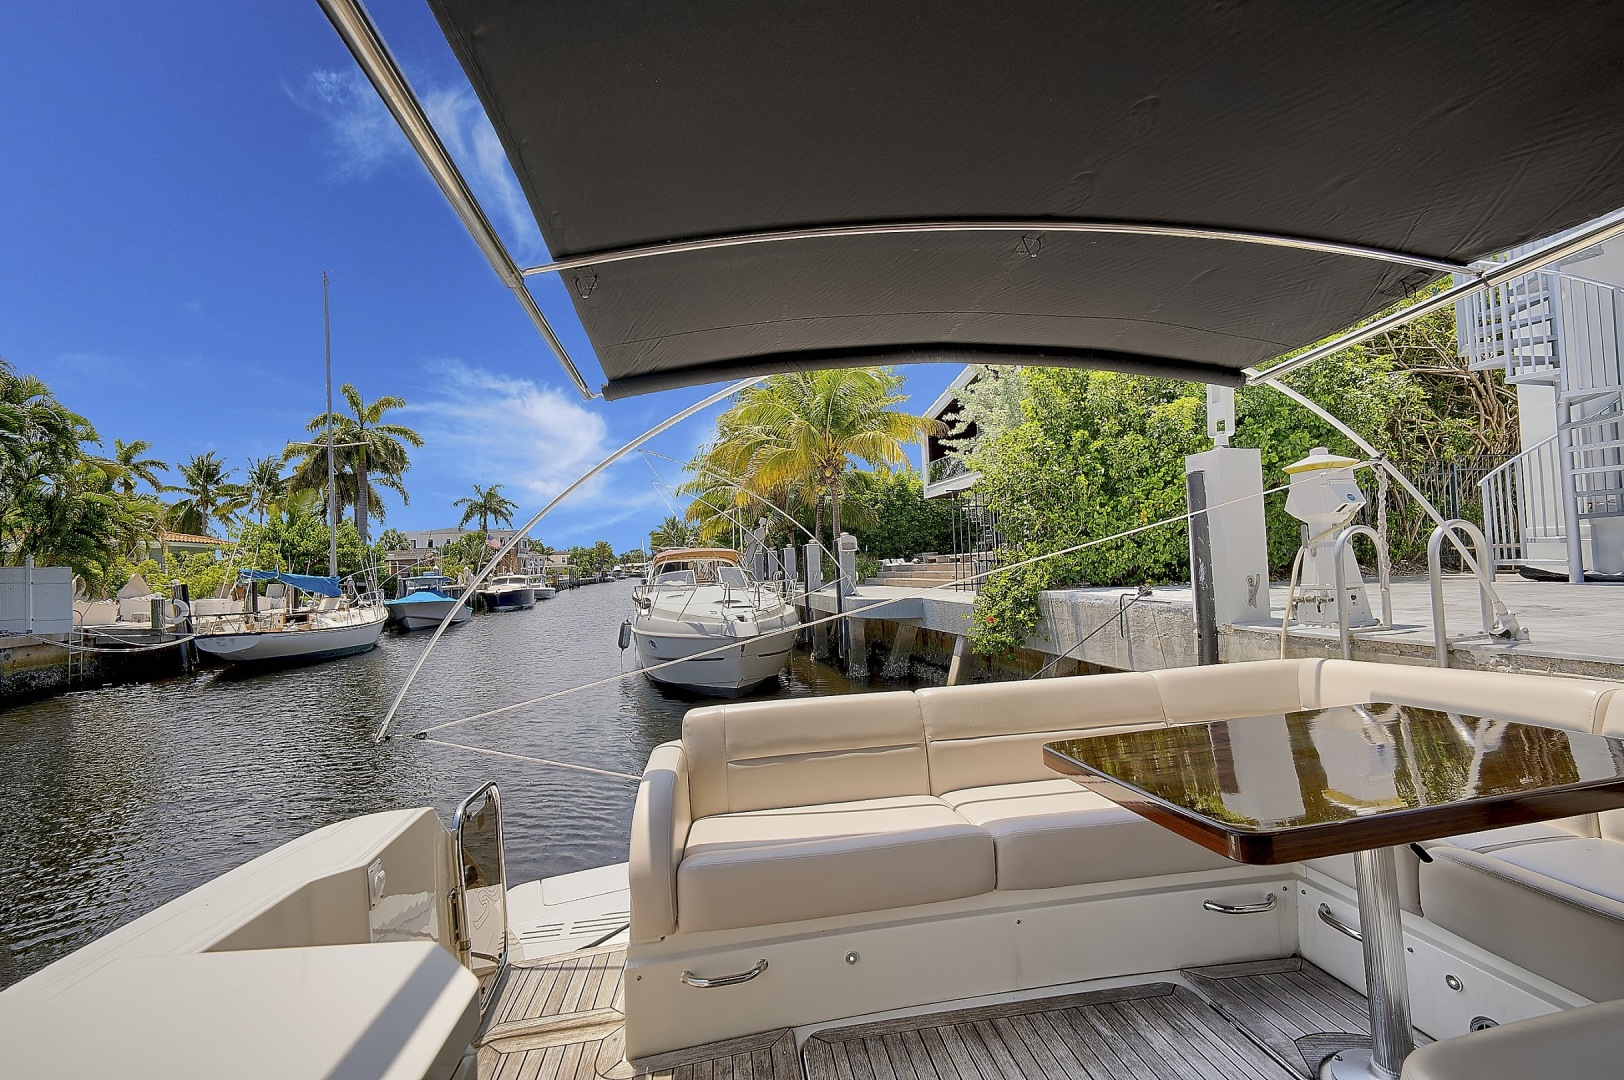 Sea Ray-Sundancer 2014-Lunasea Boca Raton-Florida-United States-1503185 | Thumbnail